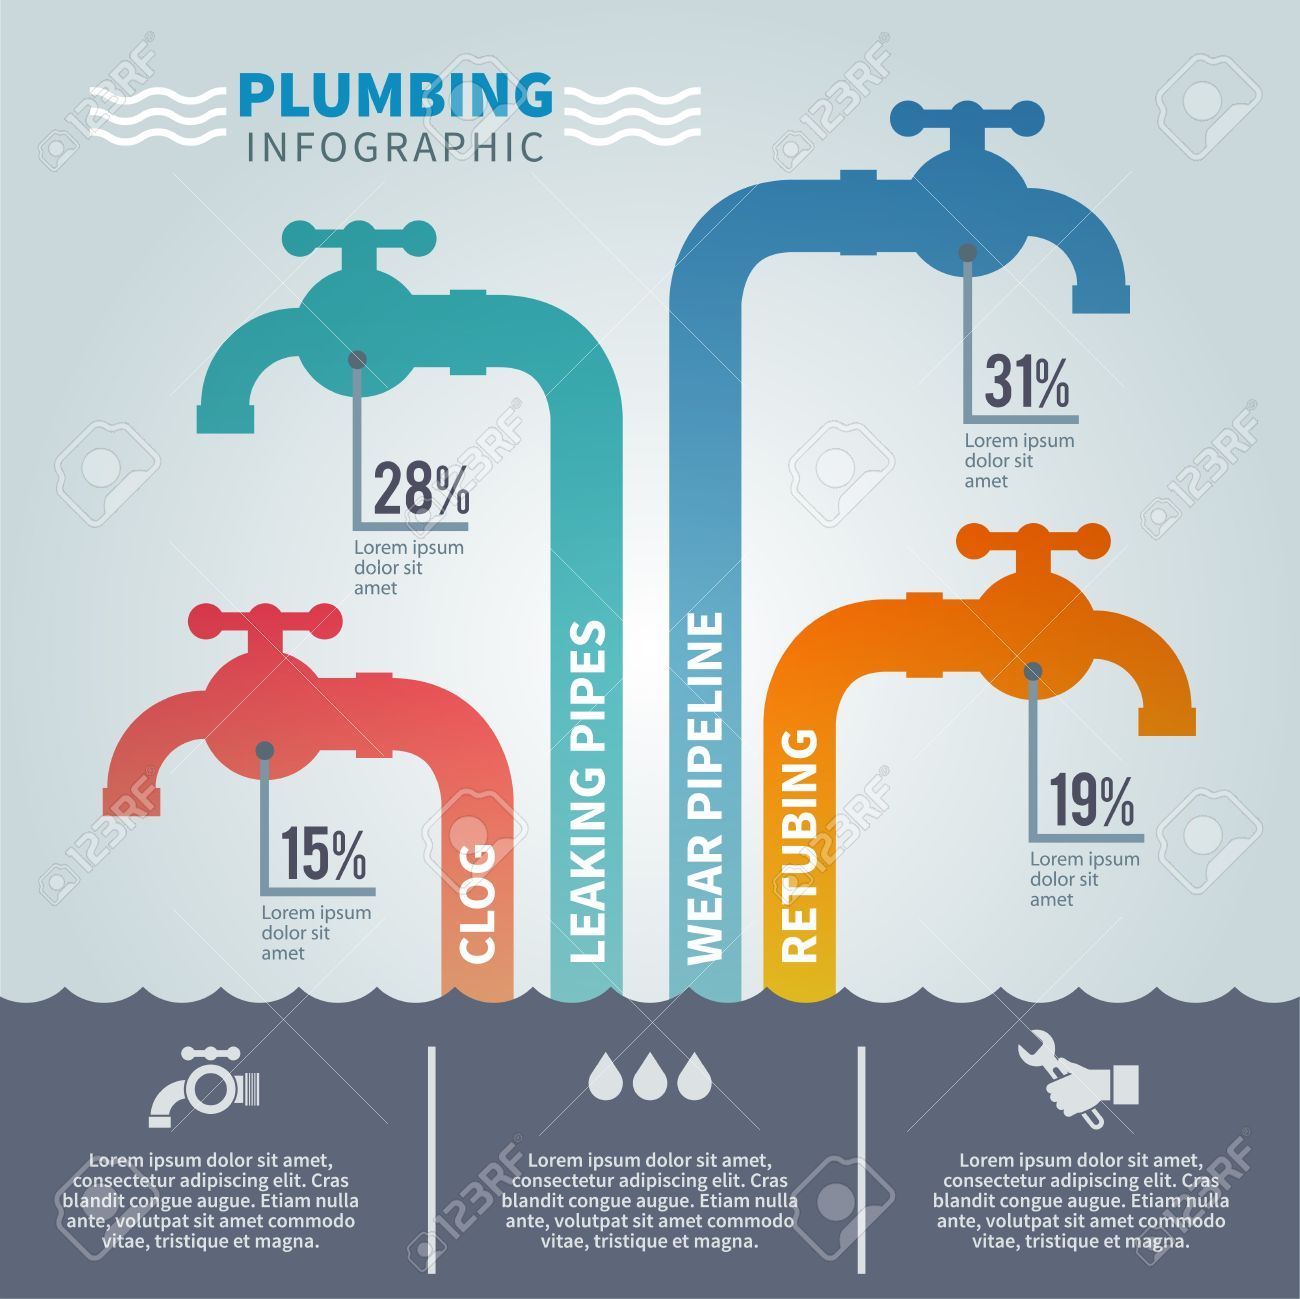 Plumbing Infographic Set With Faucets And Tube Fixture Symbols